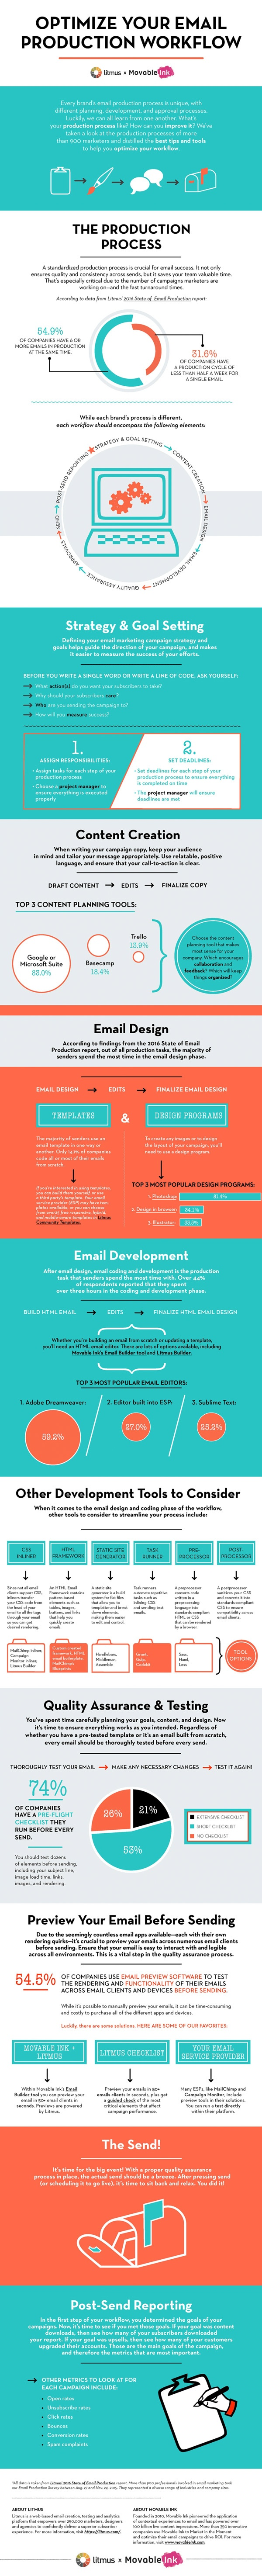 optmize-your-email-production-workflow-001.jpg